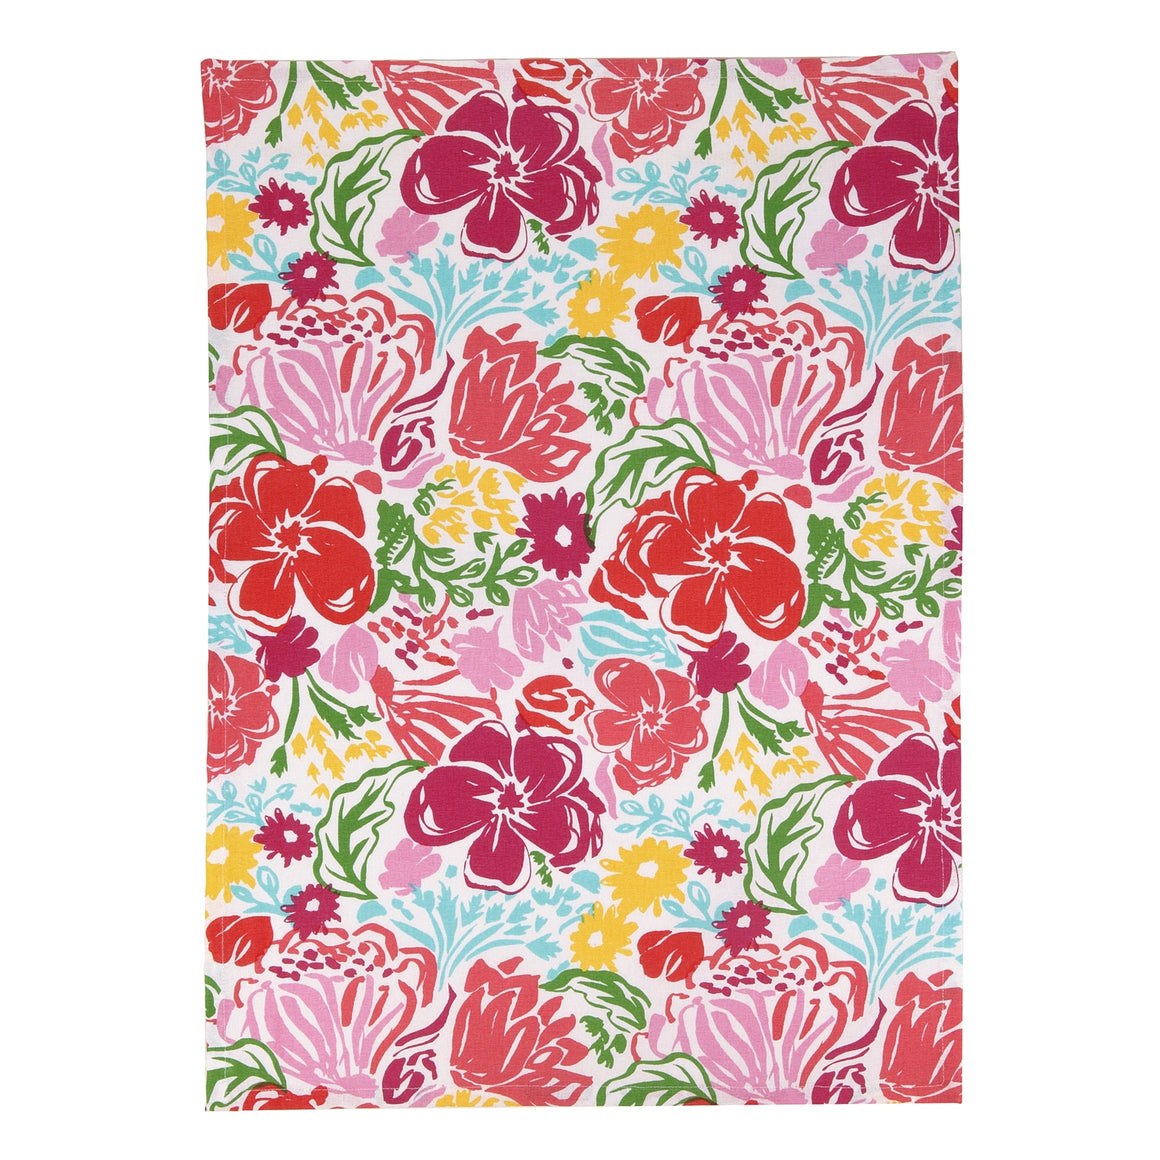 Floral Kitchen Towel - The Preppy Bunny